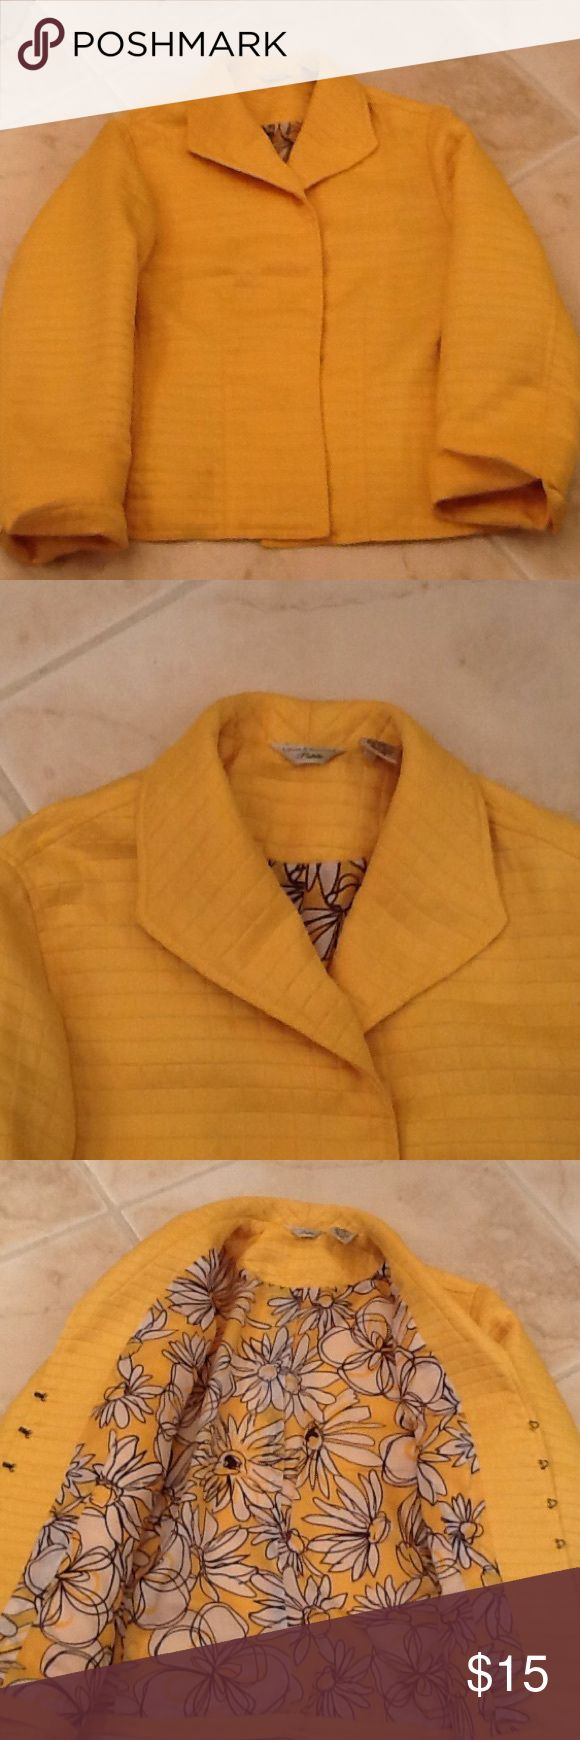 Laura Ashley Canary Yellow Preloved Jacket Bright yellow short quilted blazer or jacket. Flowered lining. Hook closures. Turn up sleeve. Laura Ashley Jackets & Coats Blazers